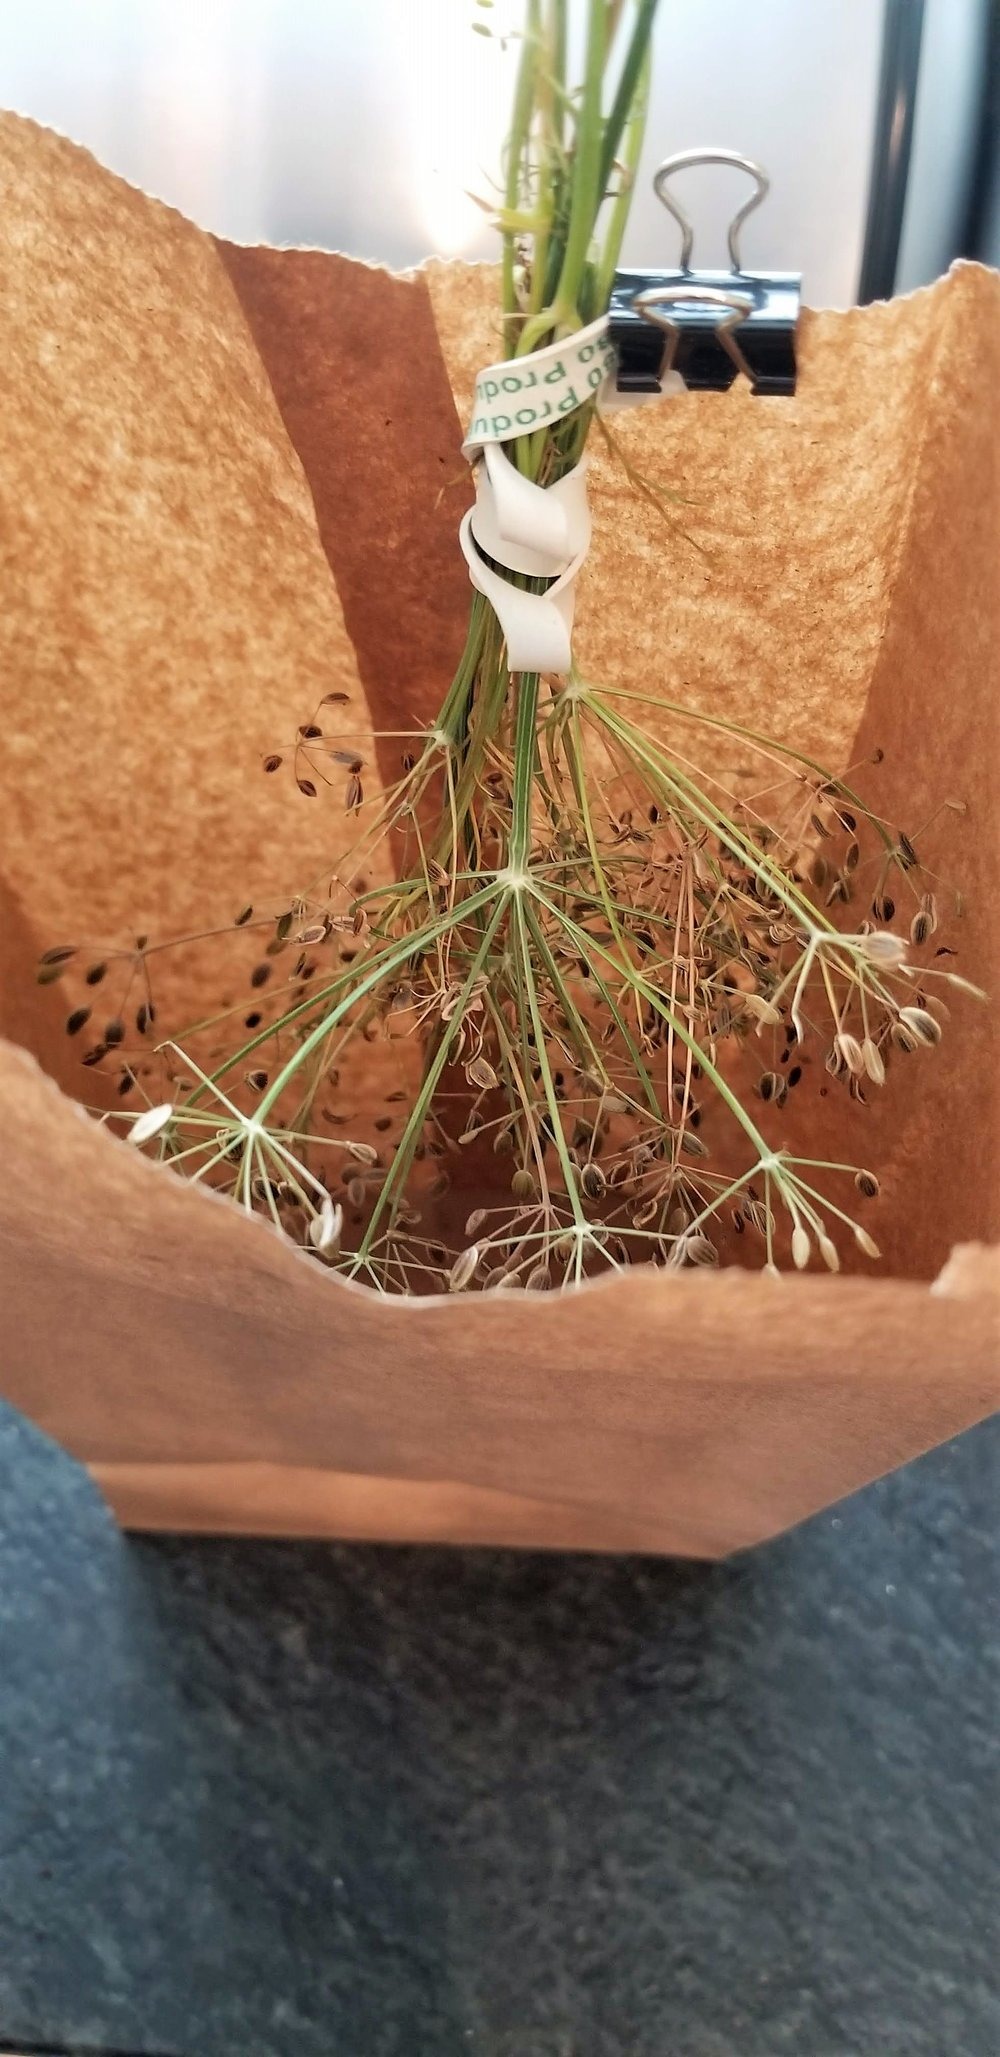 Hang bunches of seeds inside a paper bag to dry